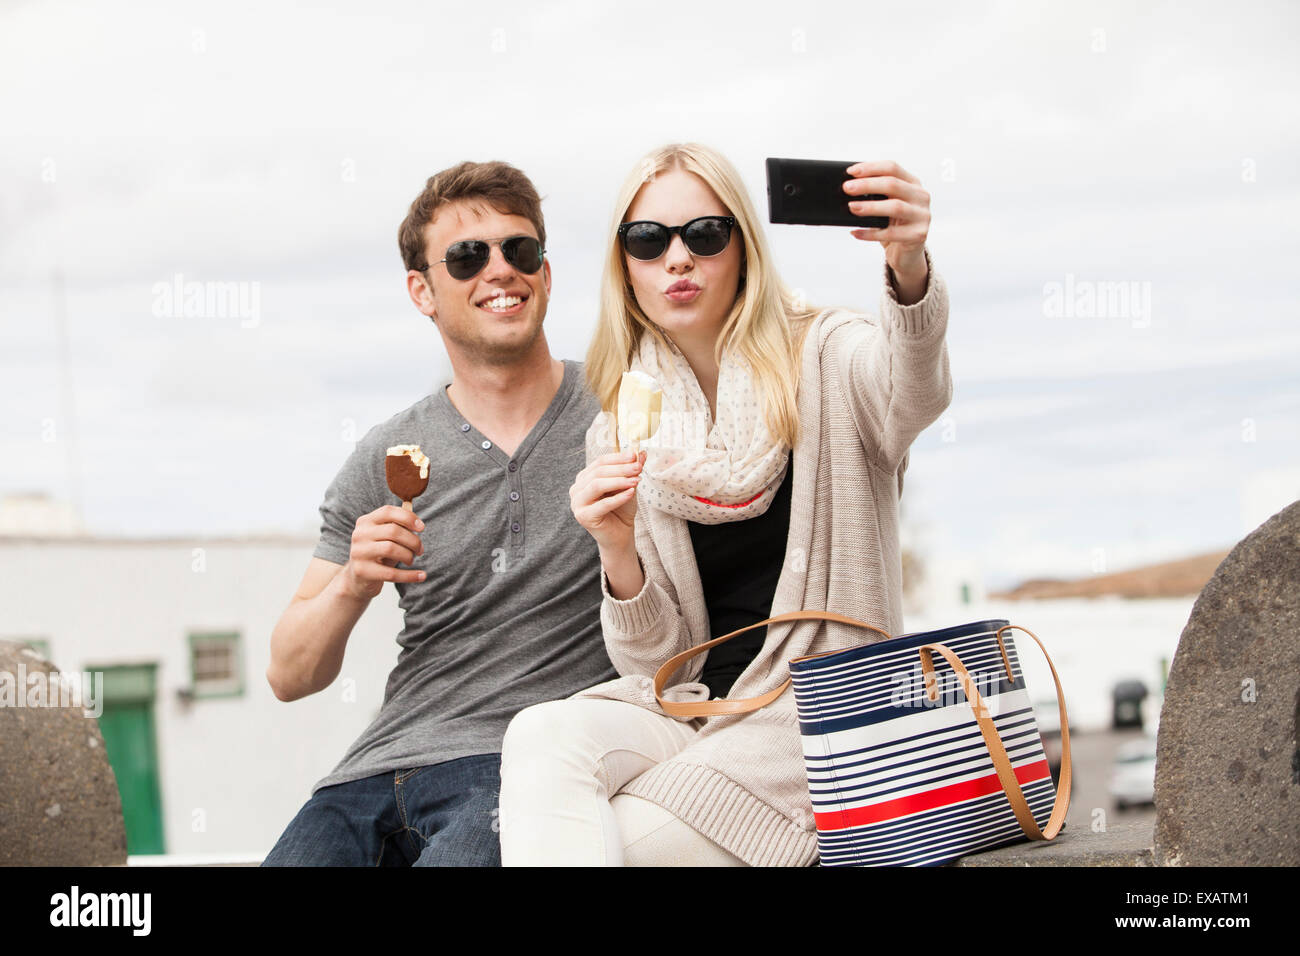 young couple making selfie shoots in the city - Stock Image